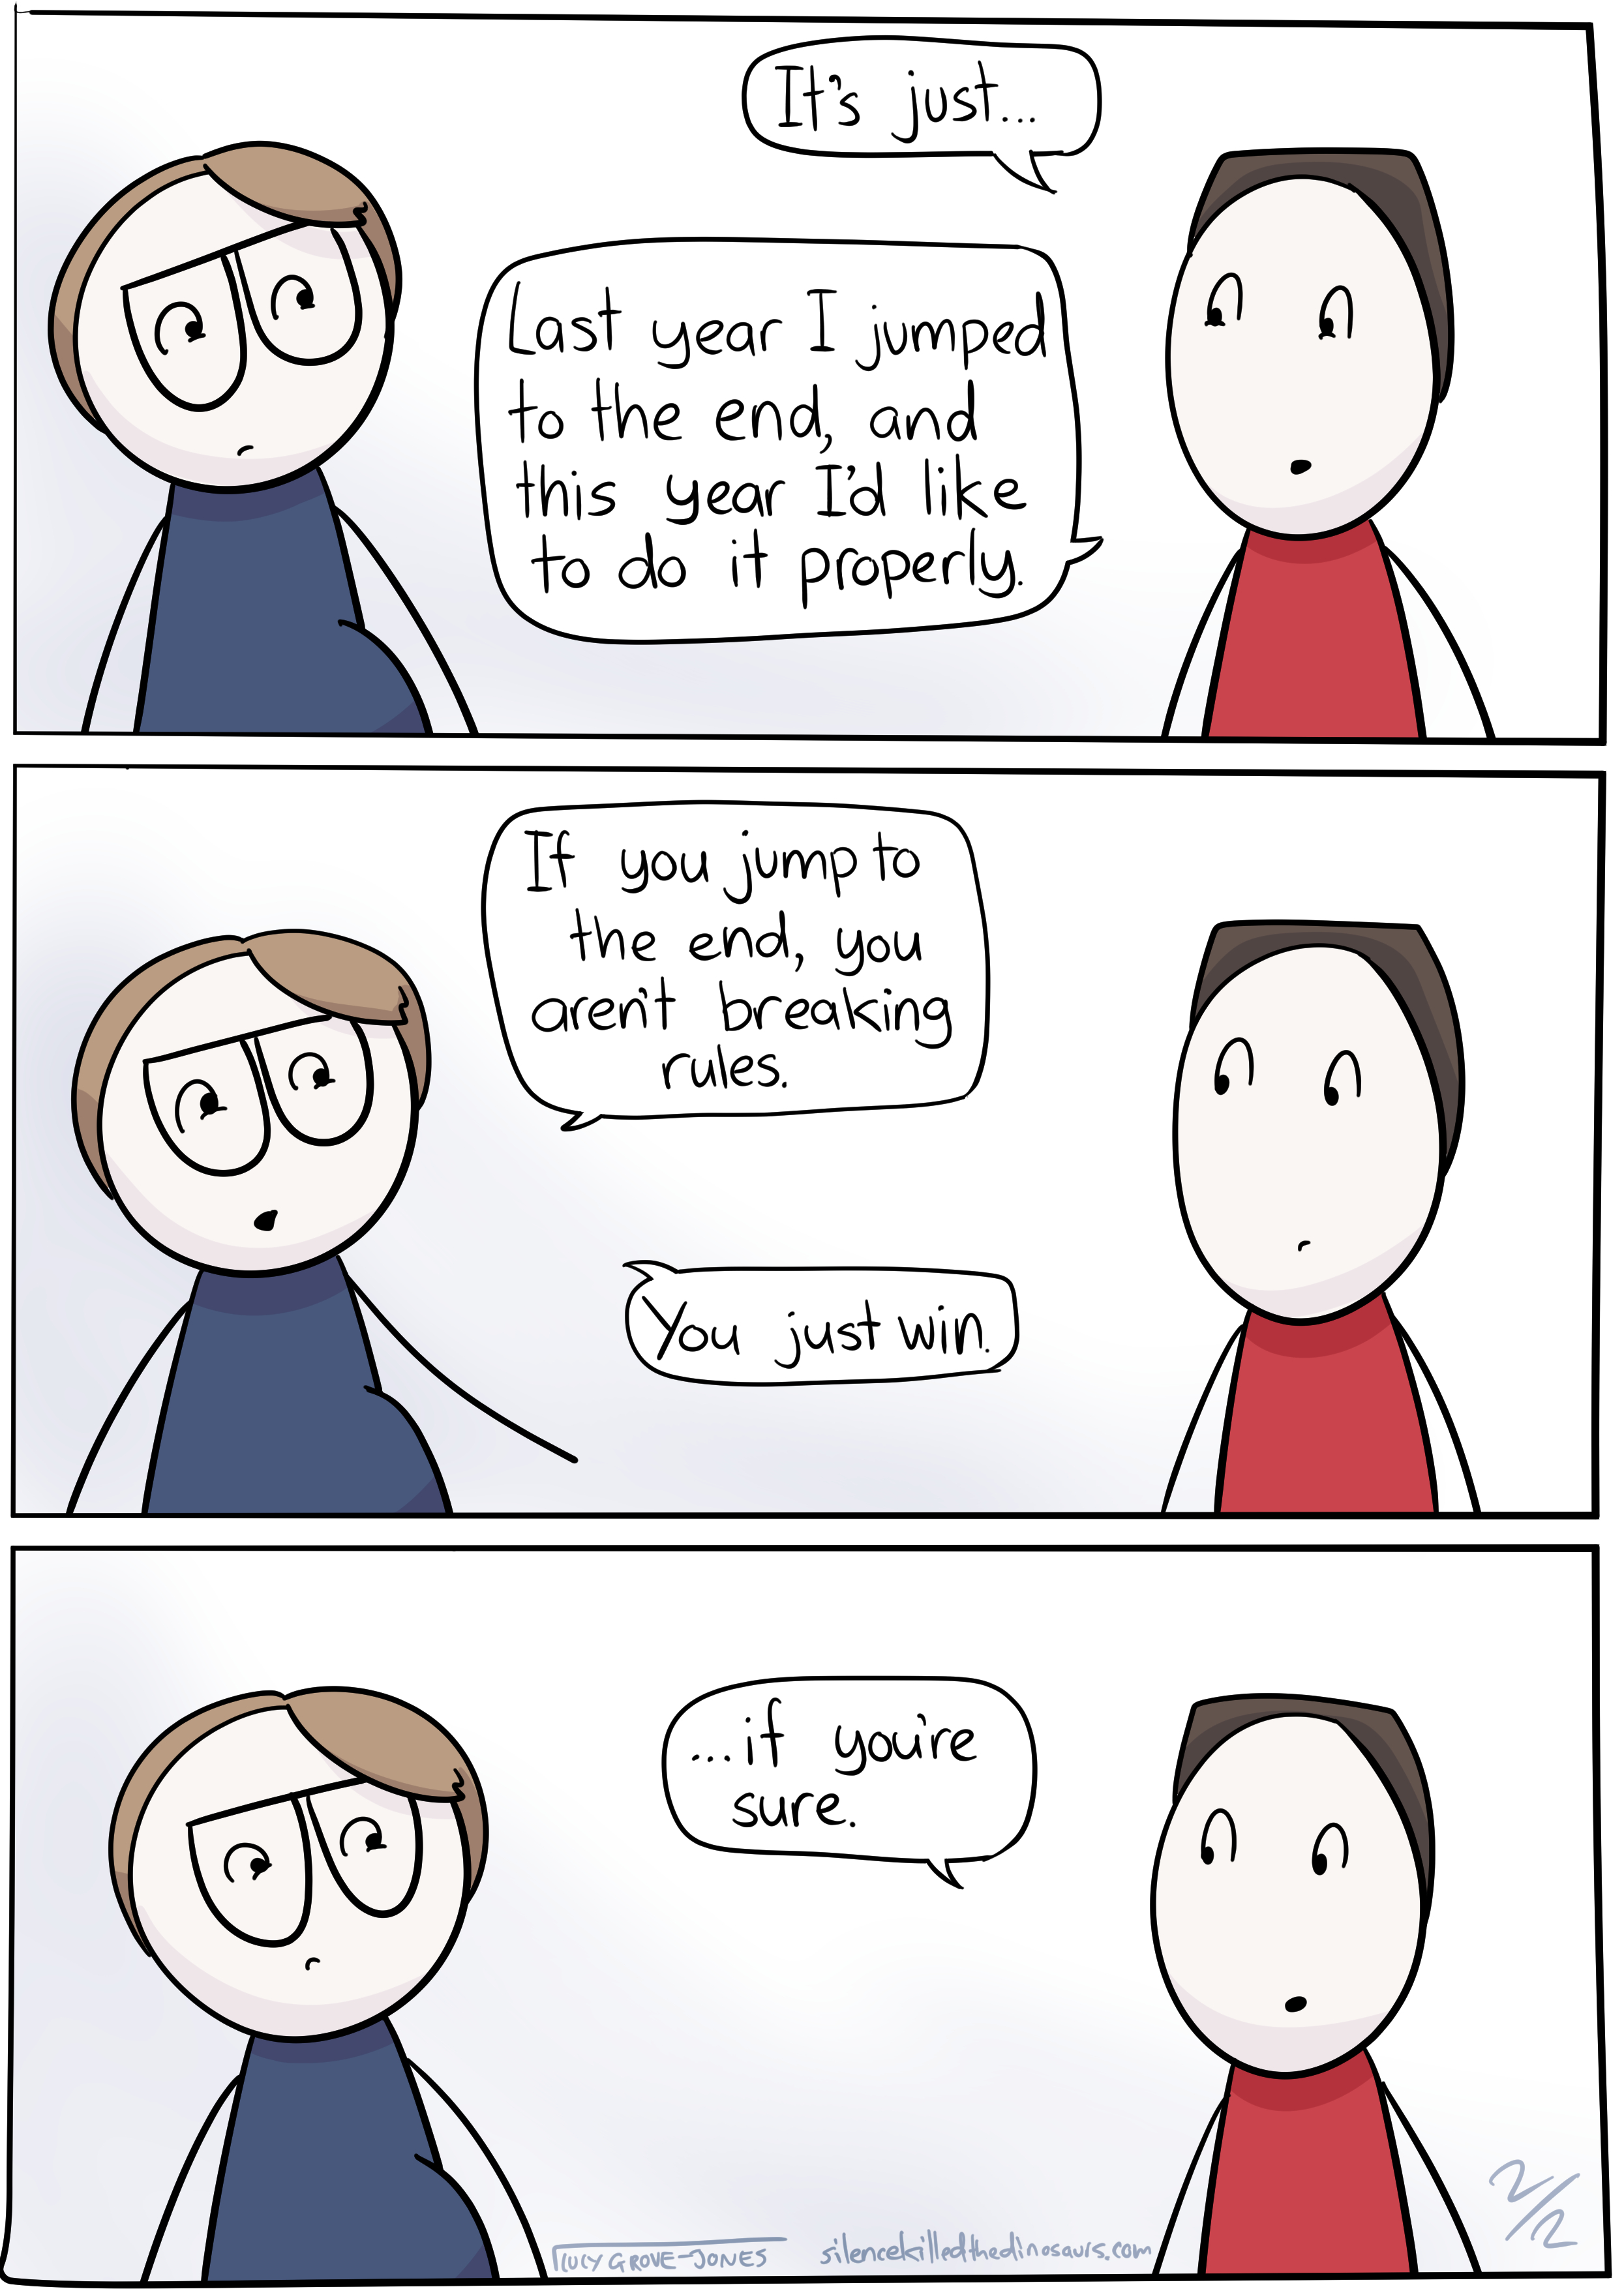 3 panels. Panel 1: my partner says 'It's just ... Last year I jumped to the end, and this year I'd like to do it properly.' Panel 2: I say 'If you jump to the end, you aren't breaking the rules. You just win.' Panel 3: my partner says, 'if you're sure.'